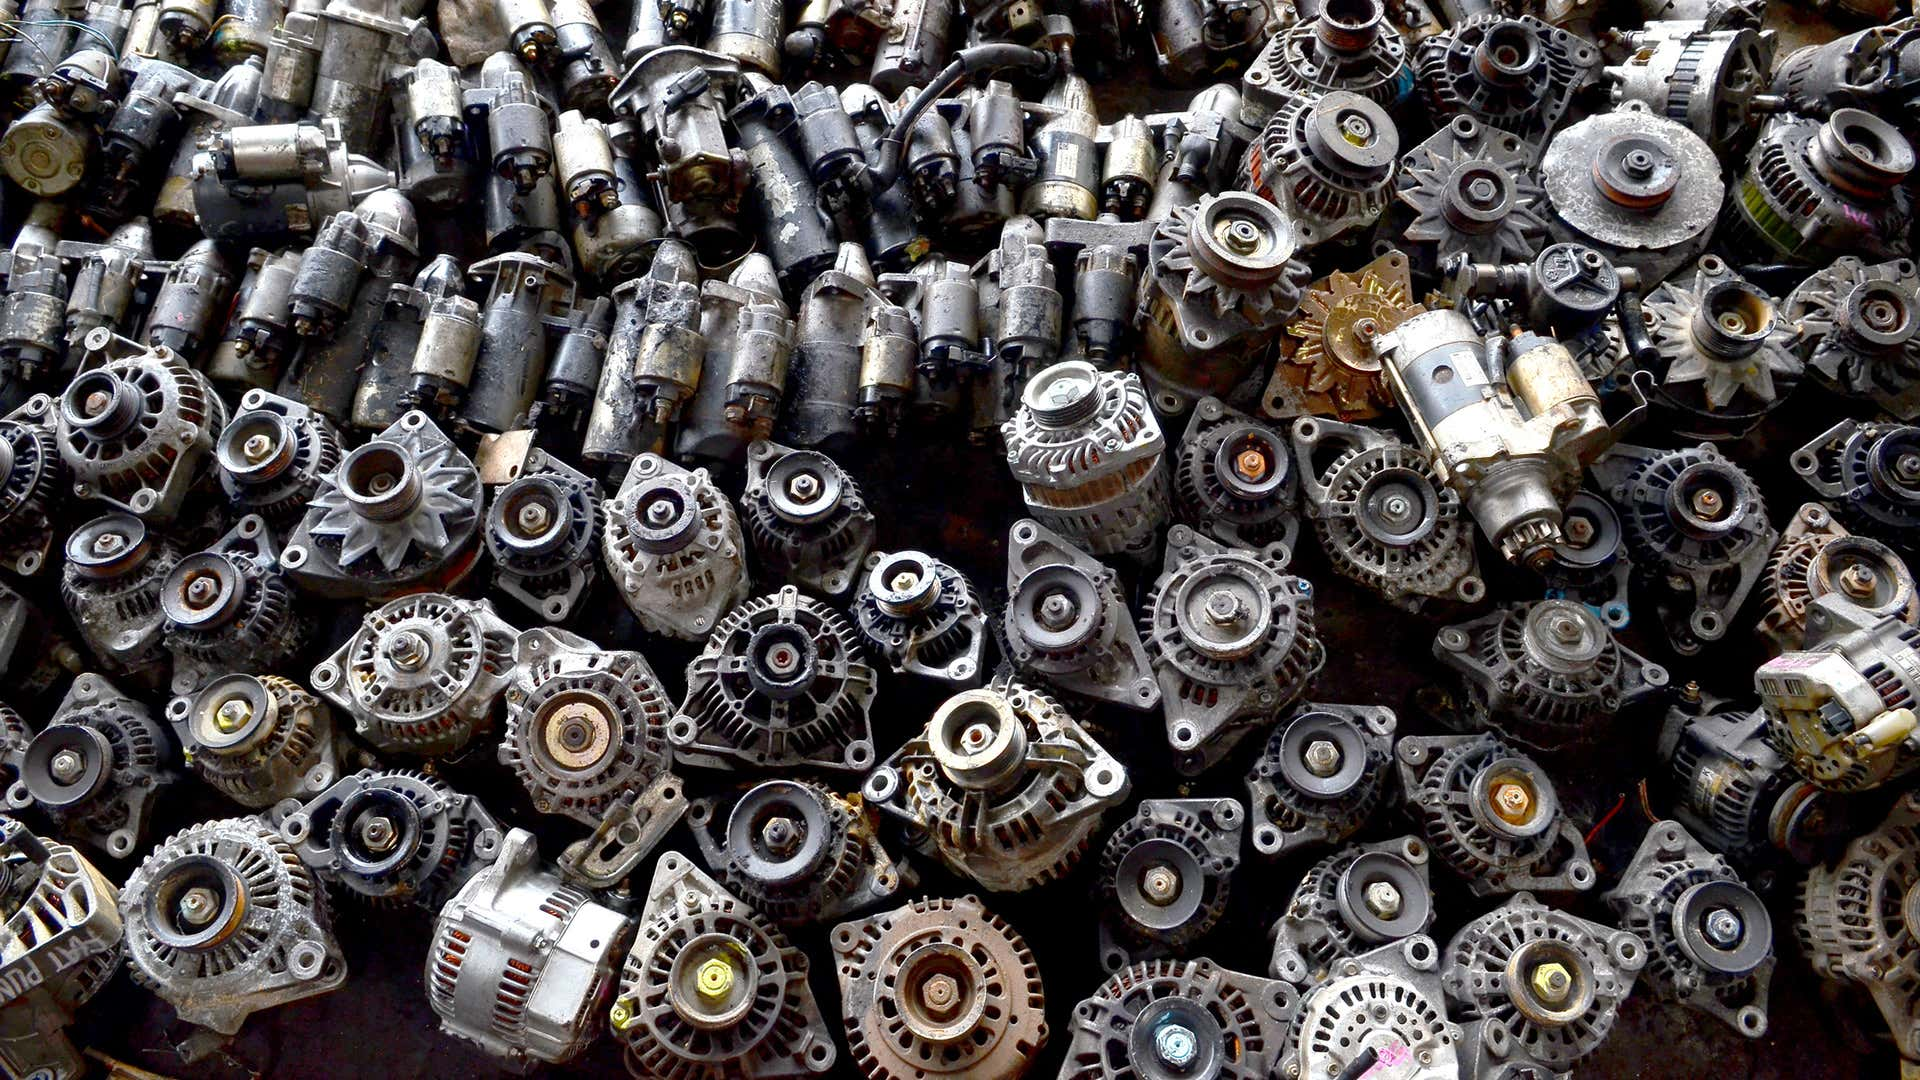 A mess of old alternator scrap.